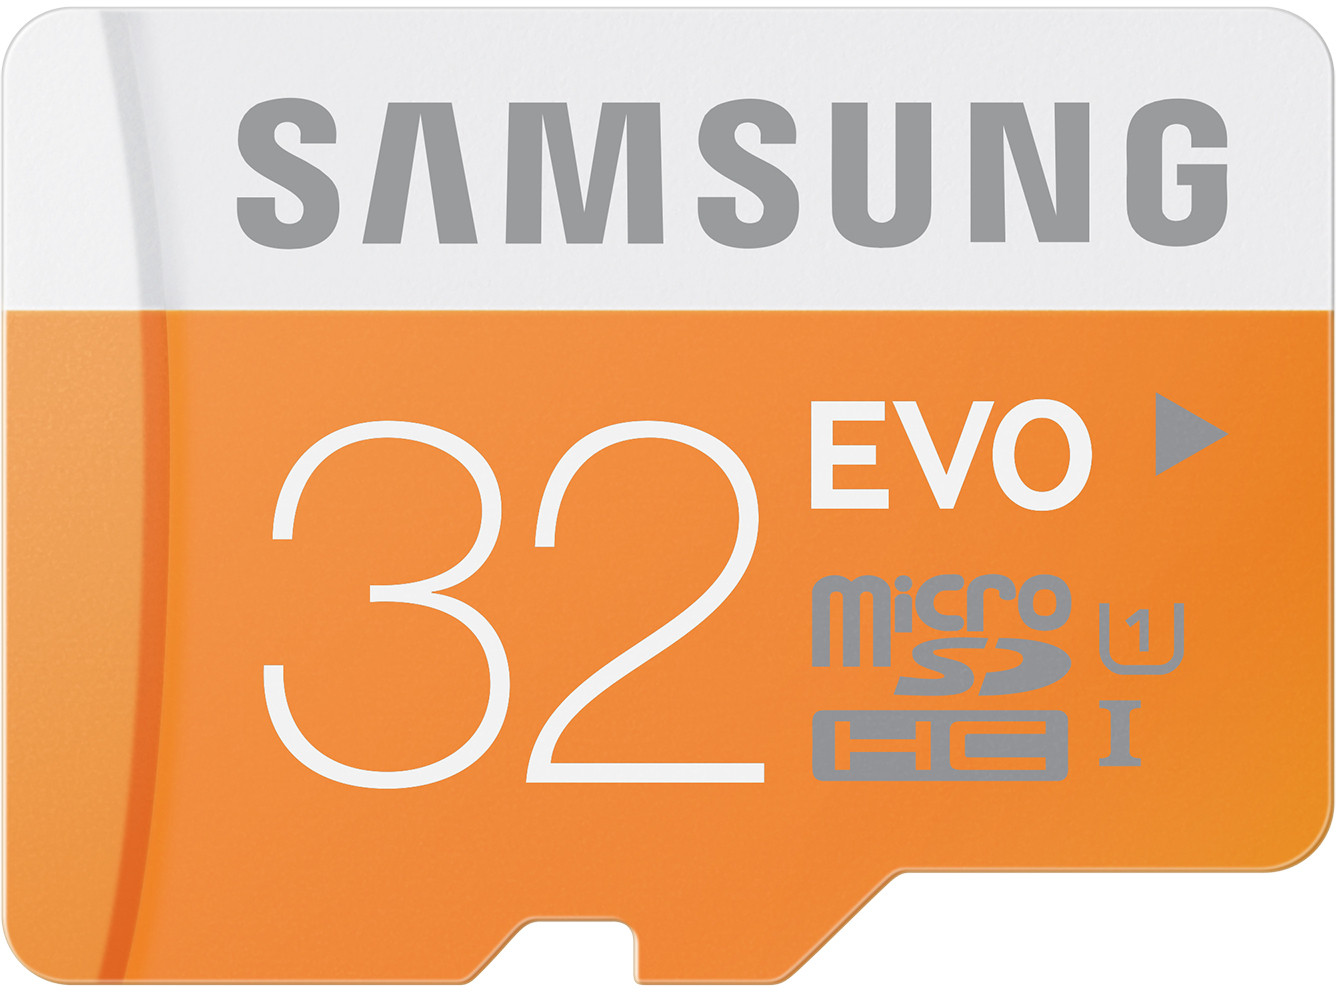 32 gigabyte sd - The Samsung Evo Is The Fastest Micro Sd We Found For The Money In Addition To Having A Lengthy 10 Year Warranty And Being Treated To Withstand All Types Of